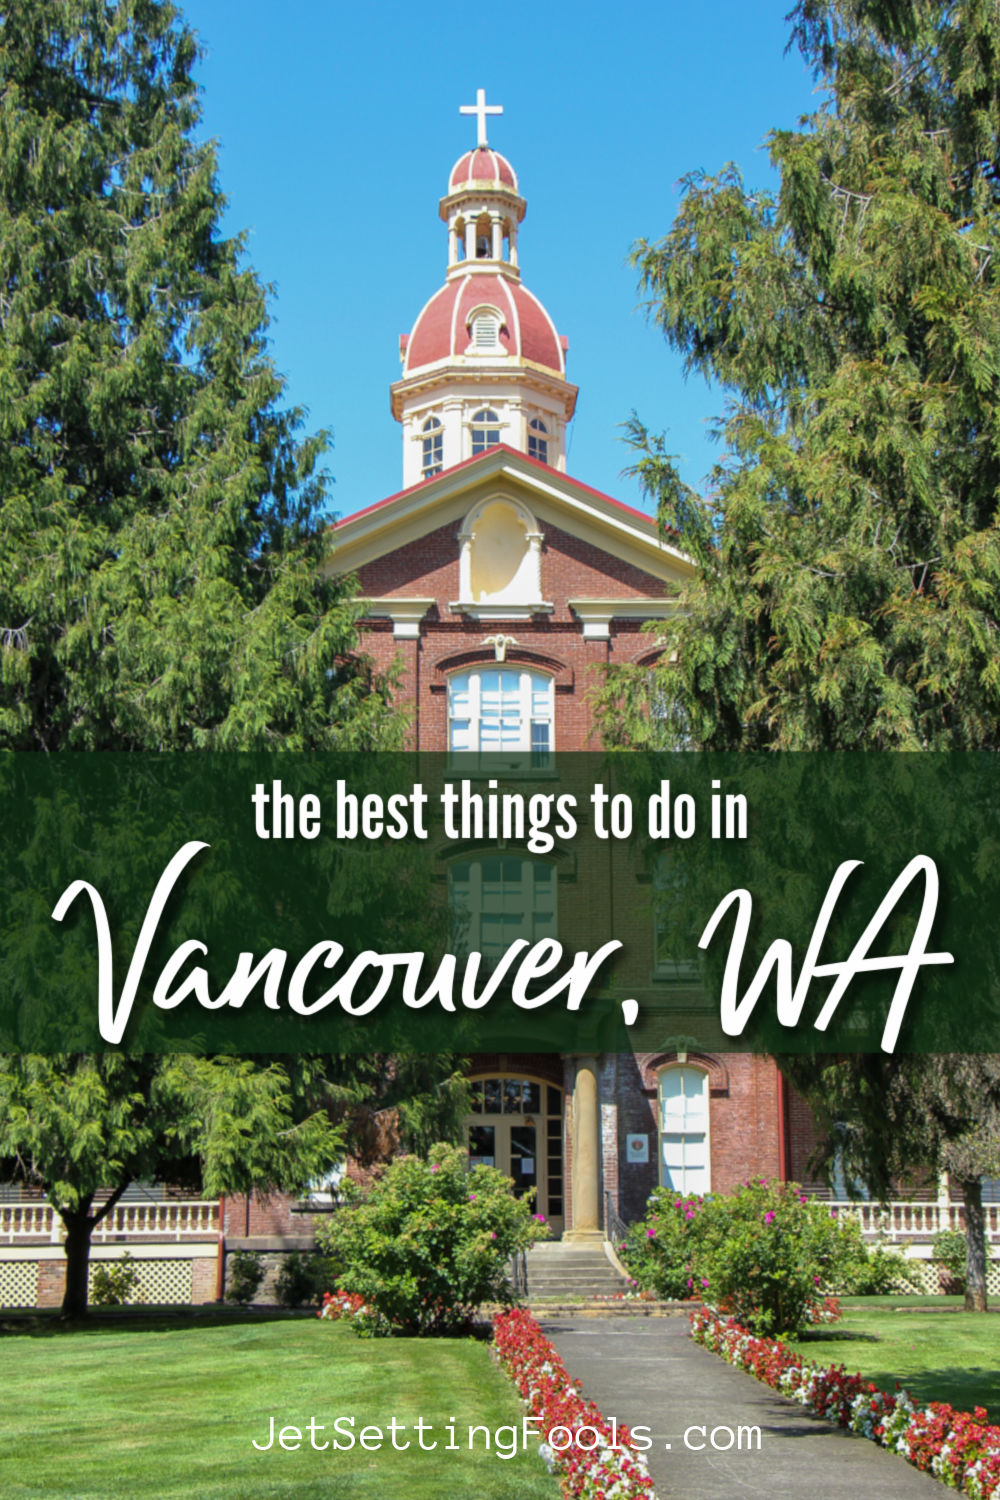 Things To Do in Vancouver, WA by JetSettingFools.com